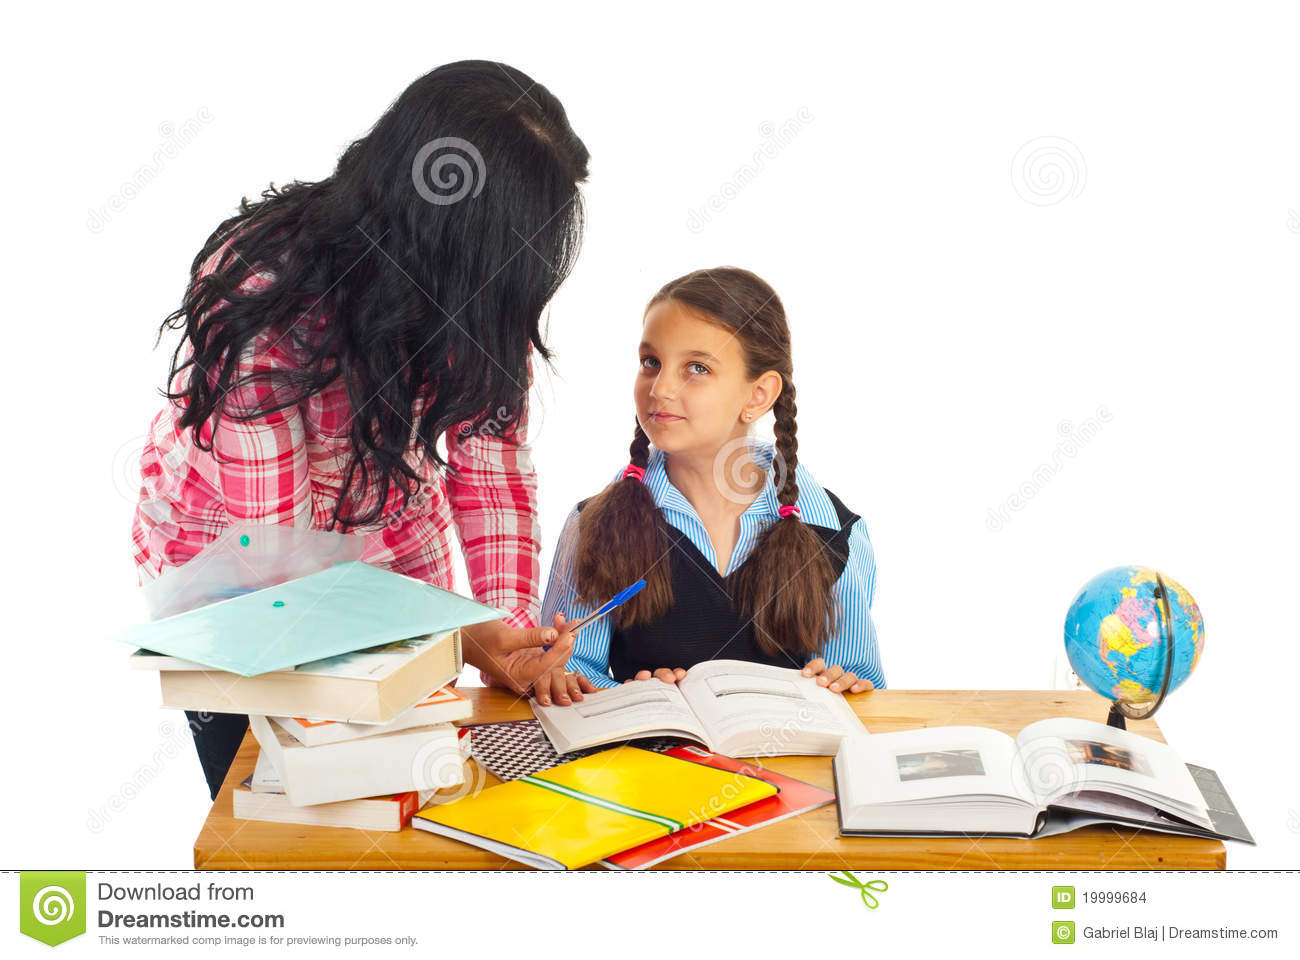 Mother asking girl about homework